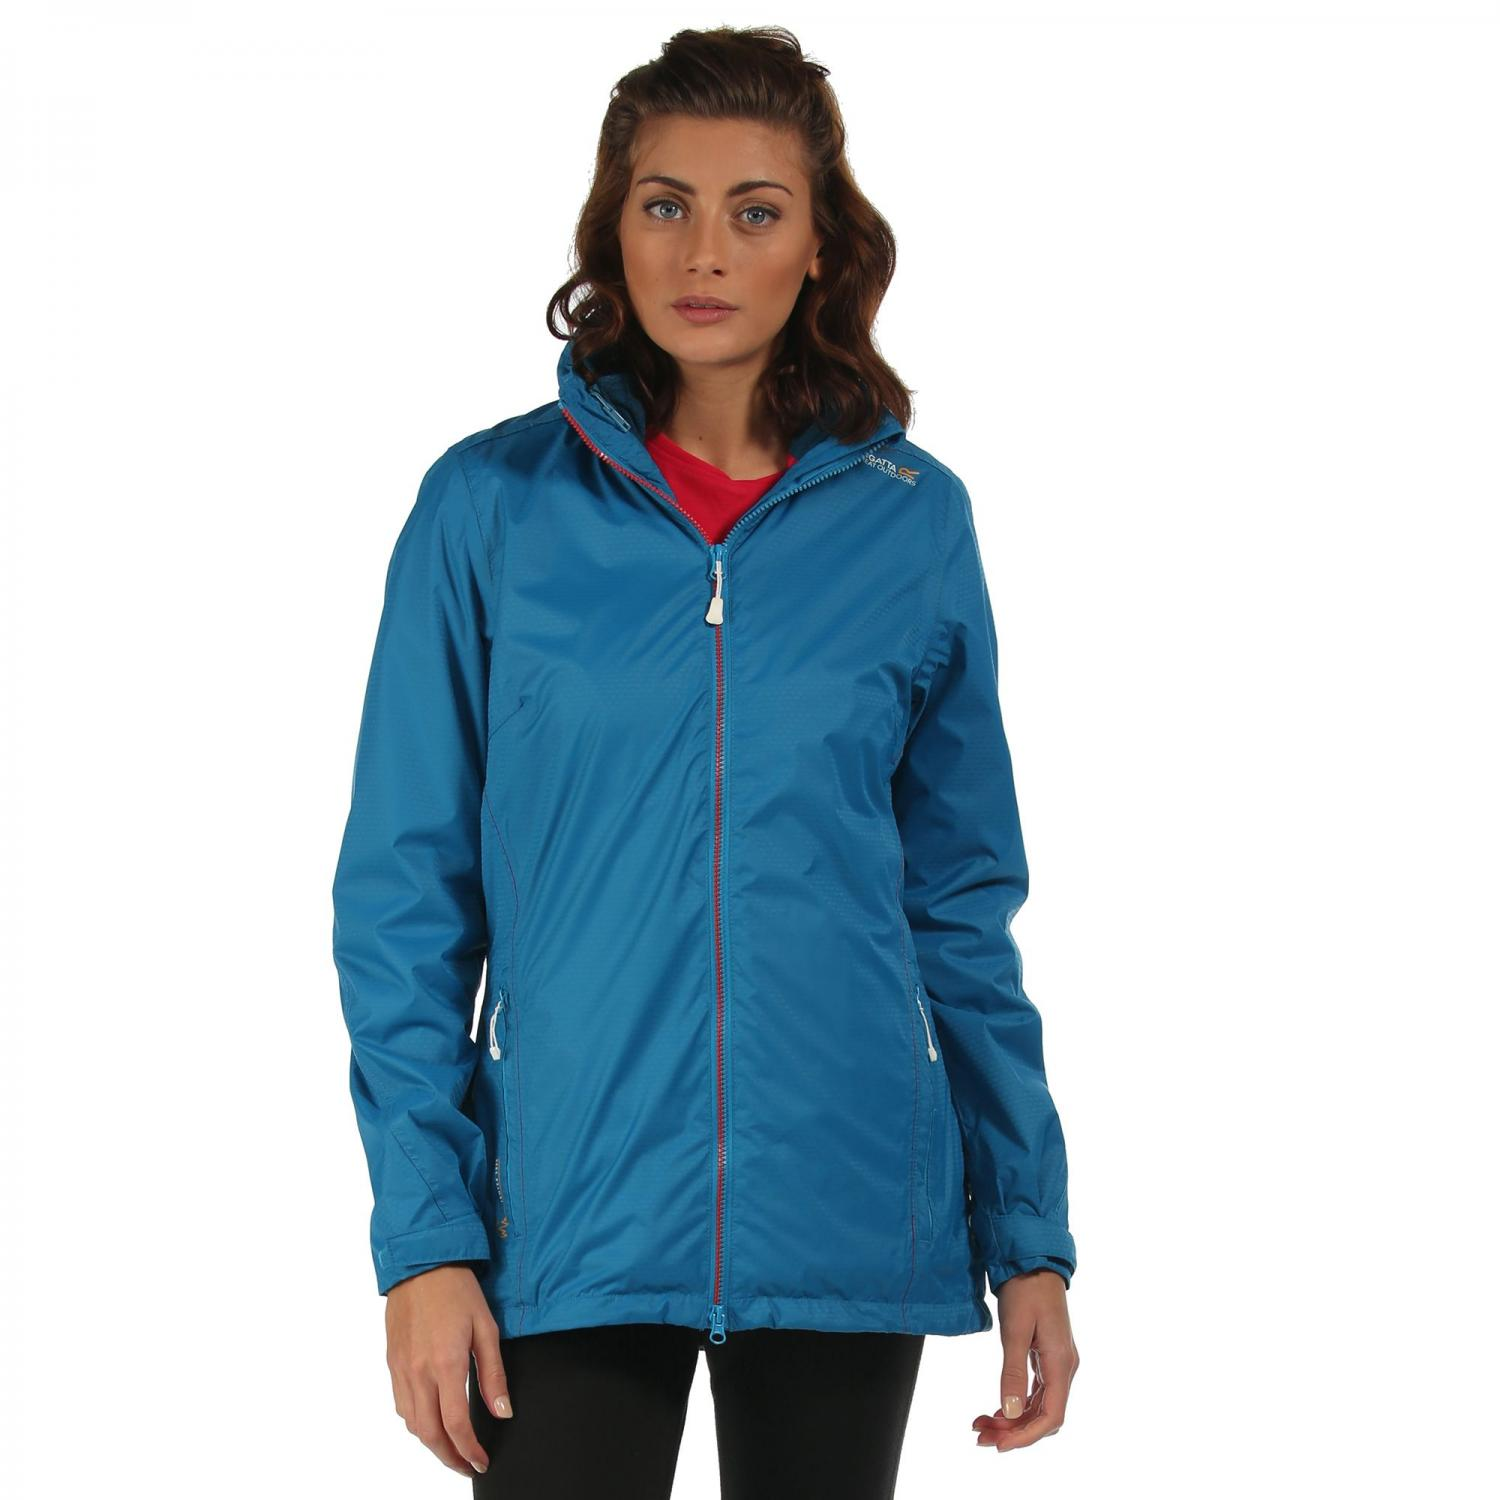 Alabama II 3 in 1 Jacket Petrol Blue